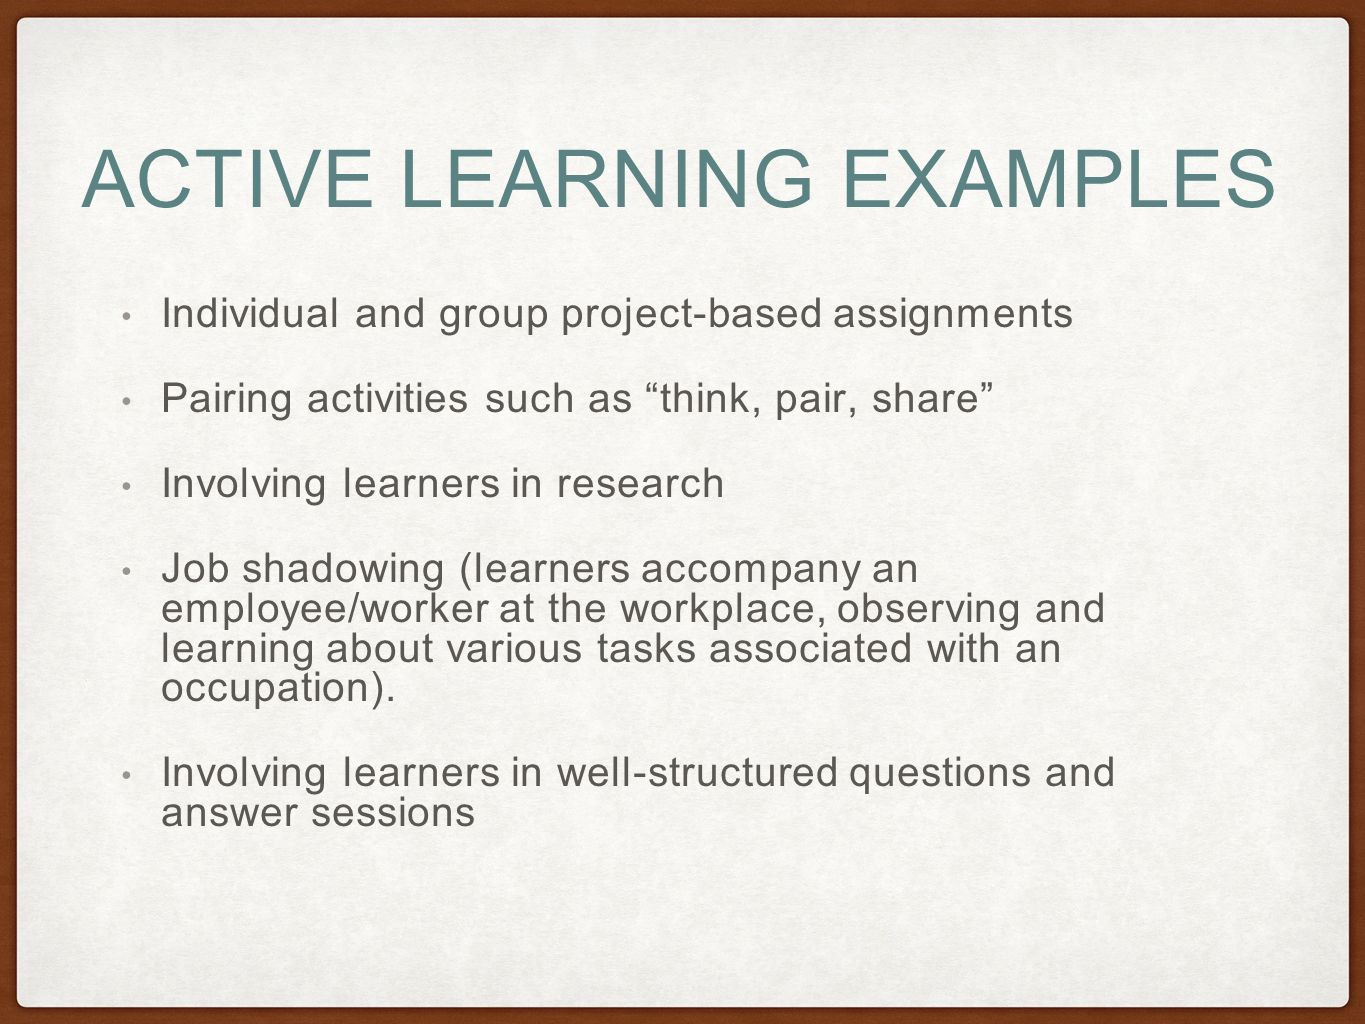 Kinetic learning self directed learning programs samples - Active Learning Examples Individual And Group Project Based Assignments Pairing Activities Such As Think